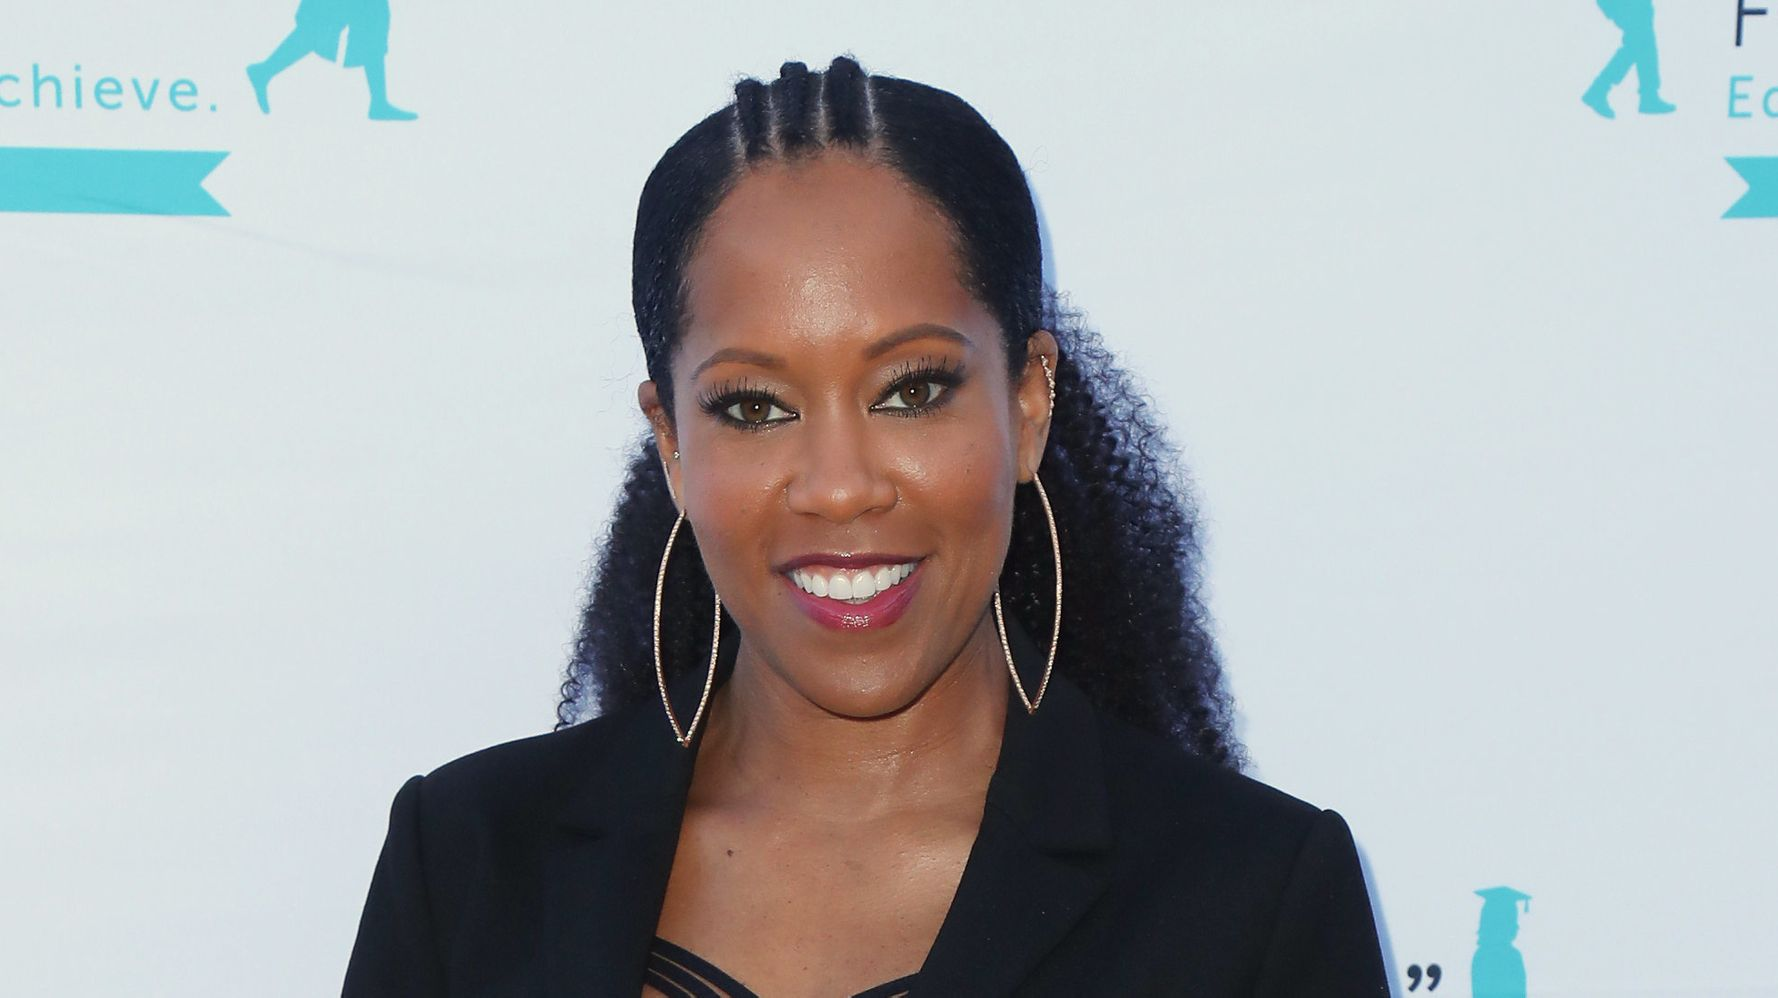 Regina King Directs First Feature Film 'One Night in Miami'